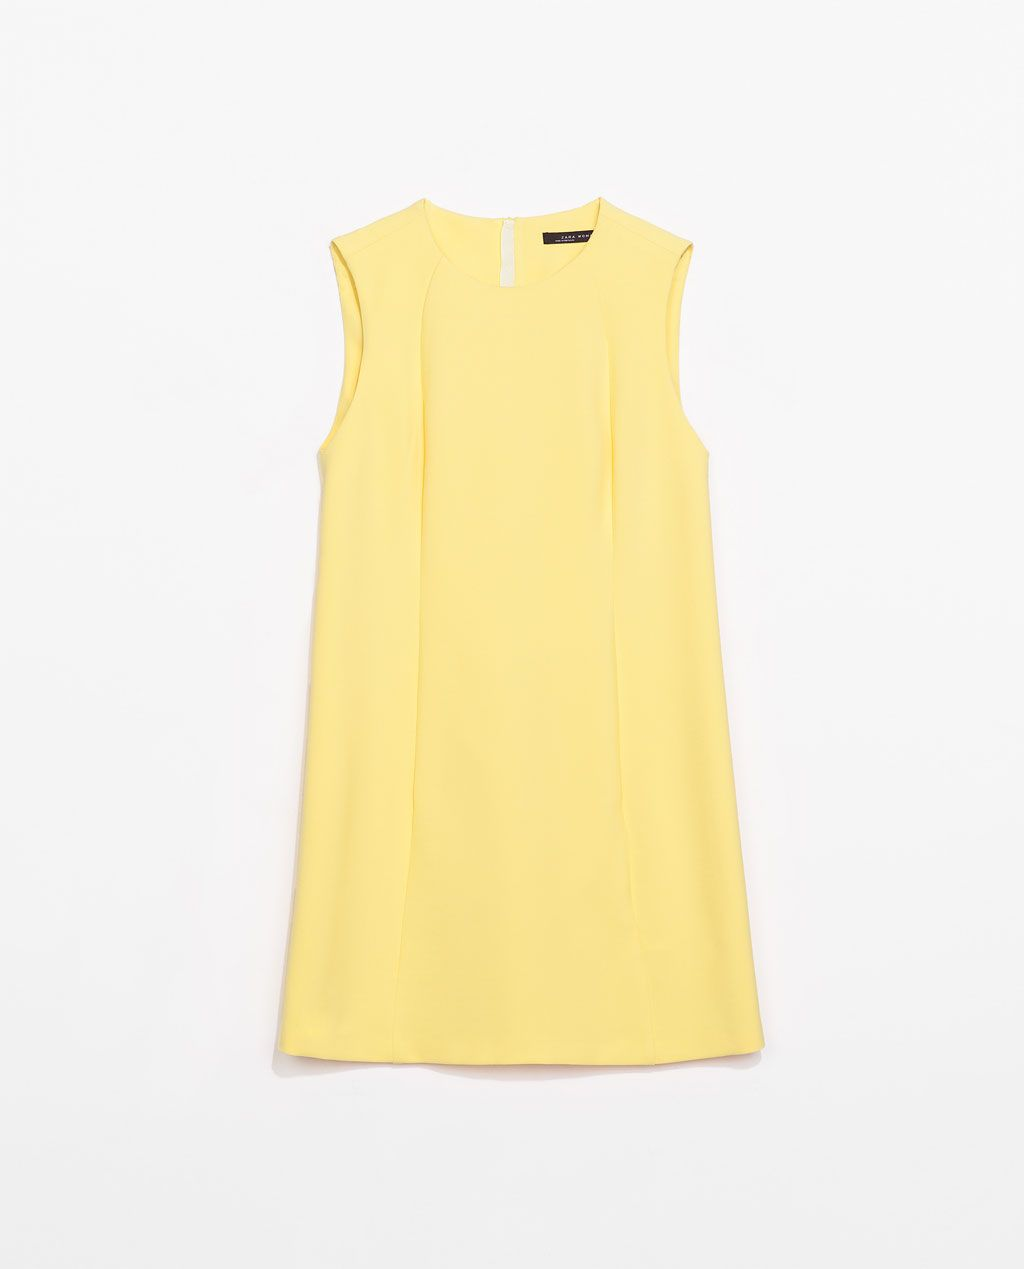 ZARA - WOMAN - DRESS WITH POCKETS